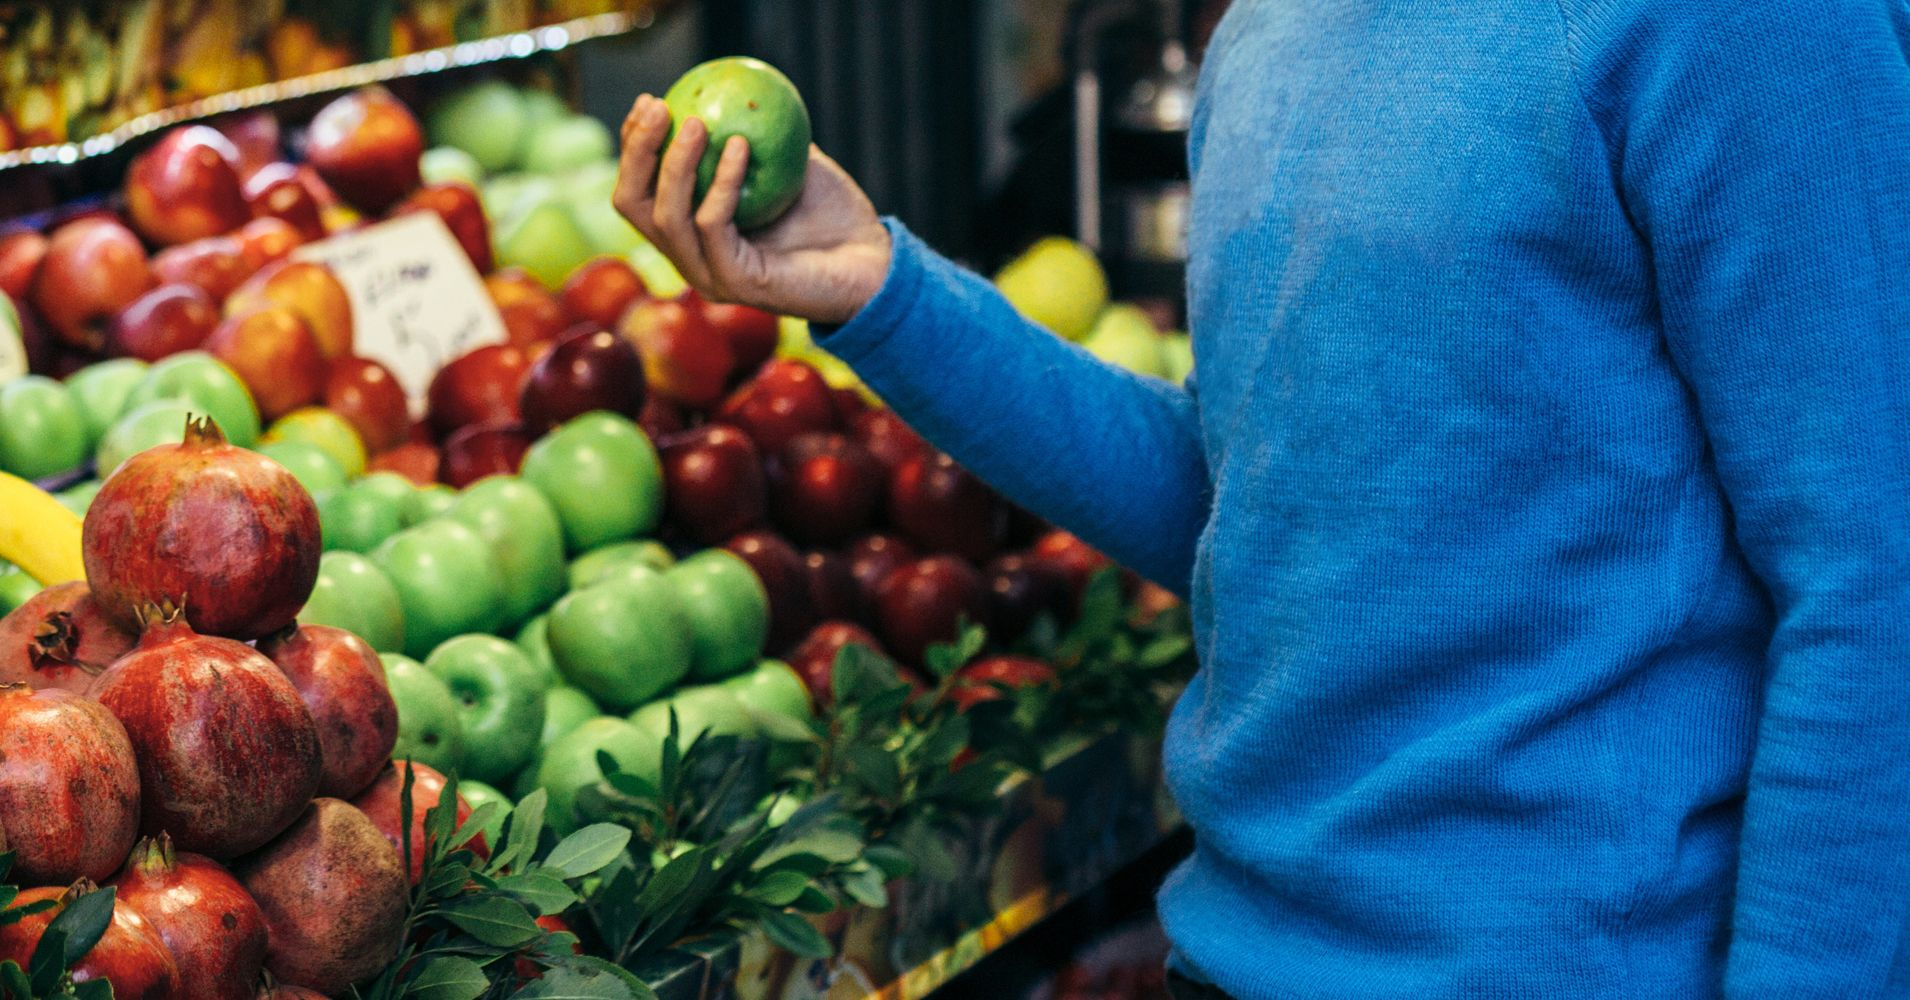 Virginia Man Accused Of Rubbing Produce On Buttocks And Putting It Back On Shelves | HuffPost